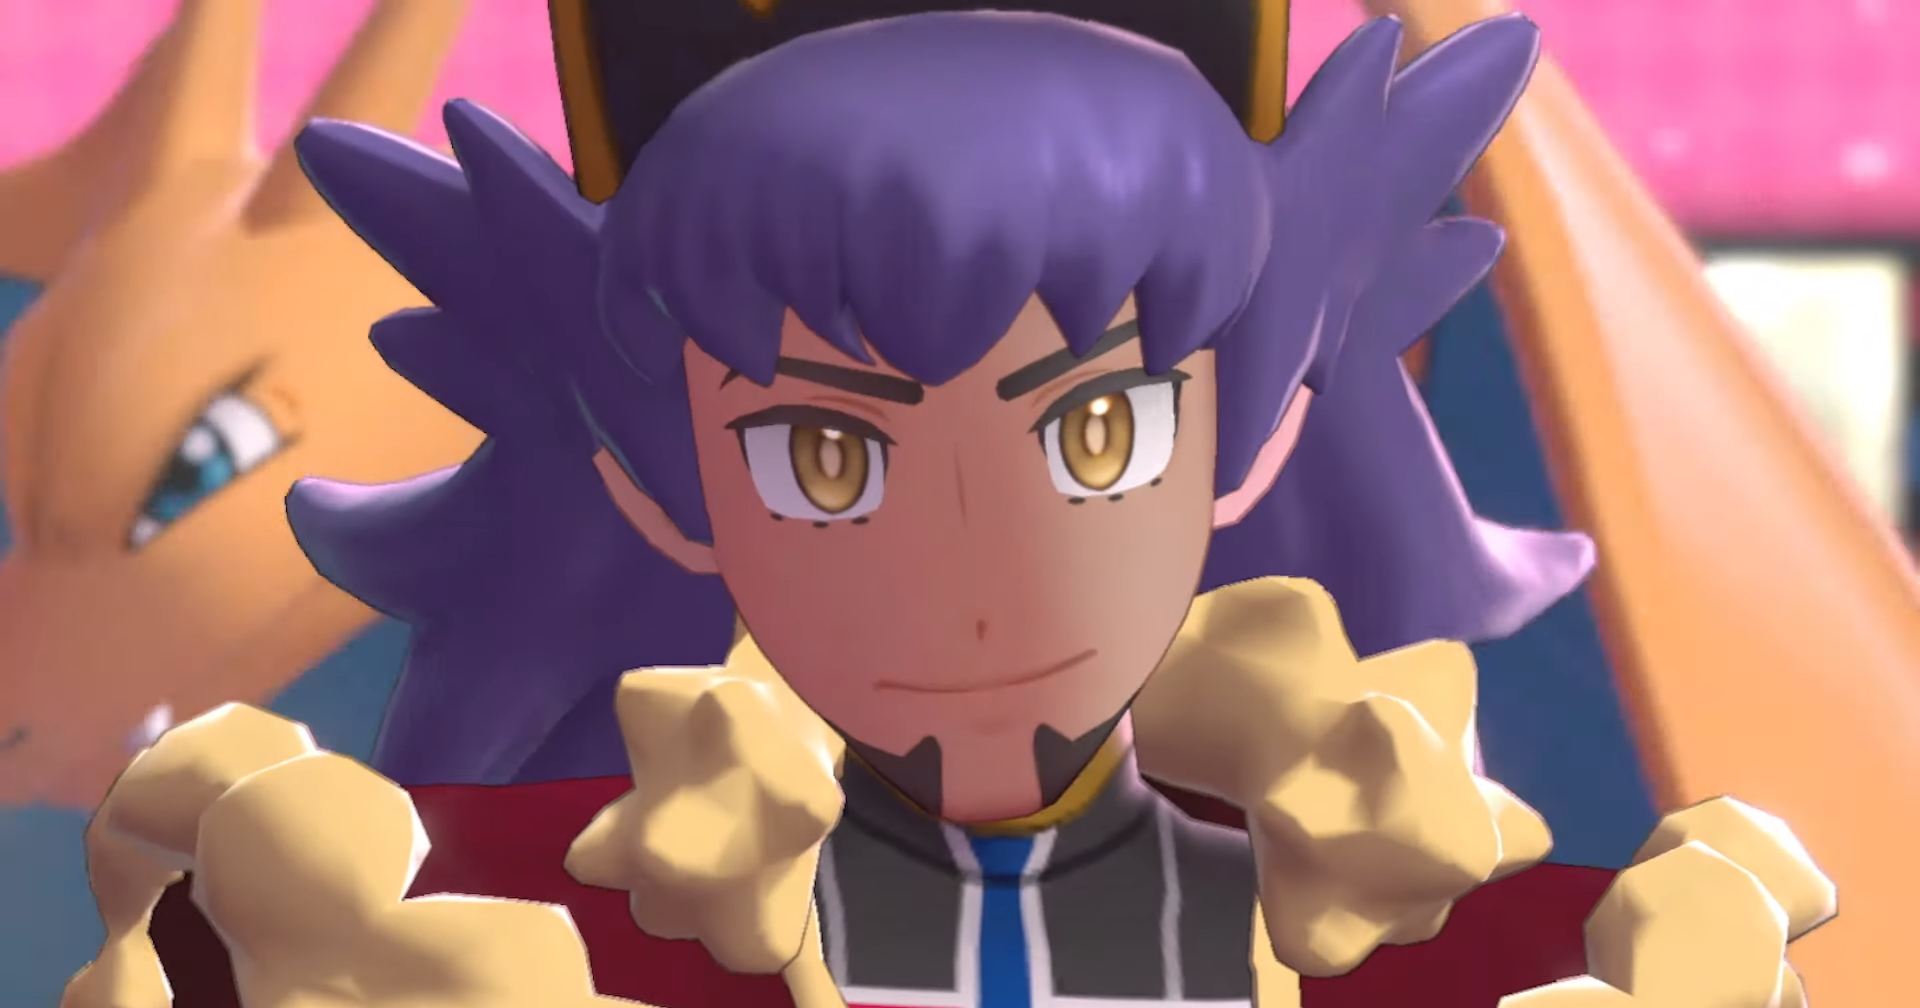 Pokemon Sword And Shield Pre E3 Reveal I Is For Inventory